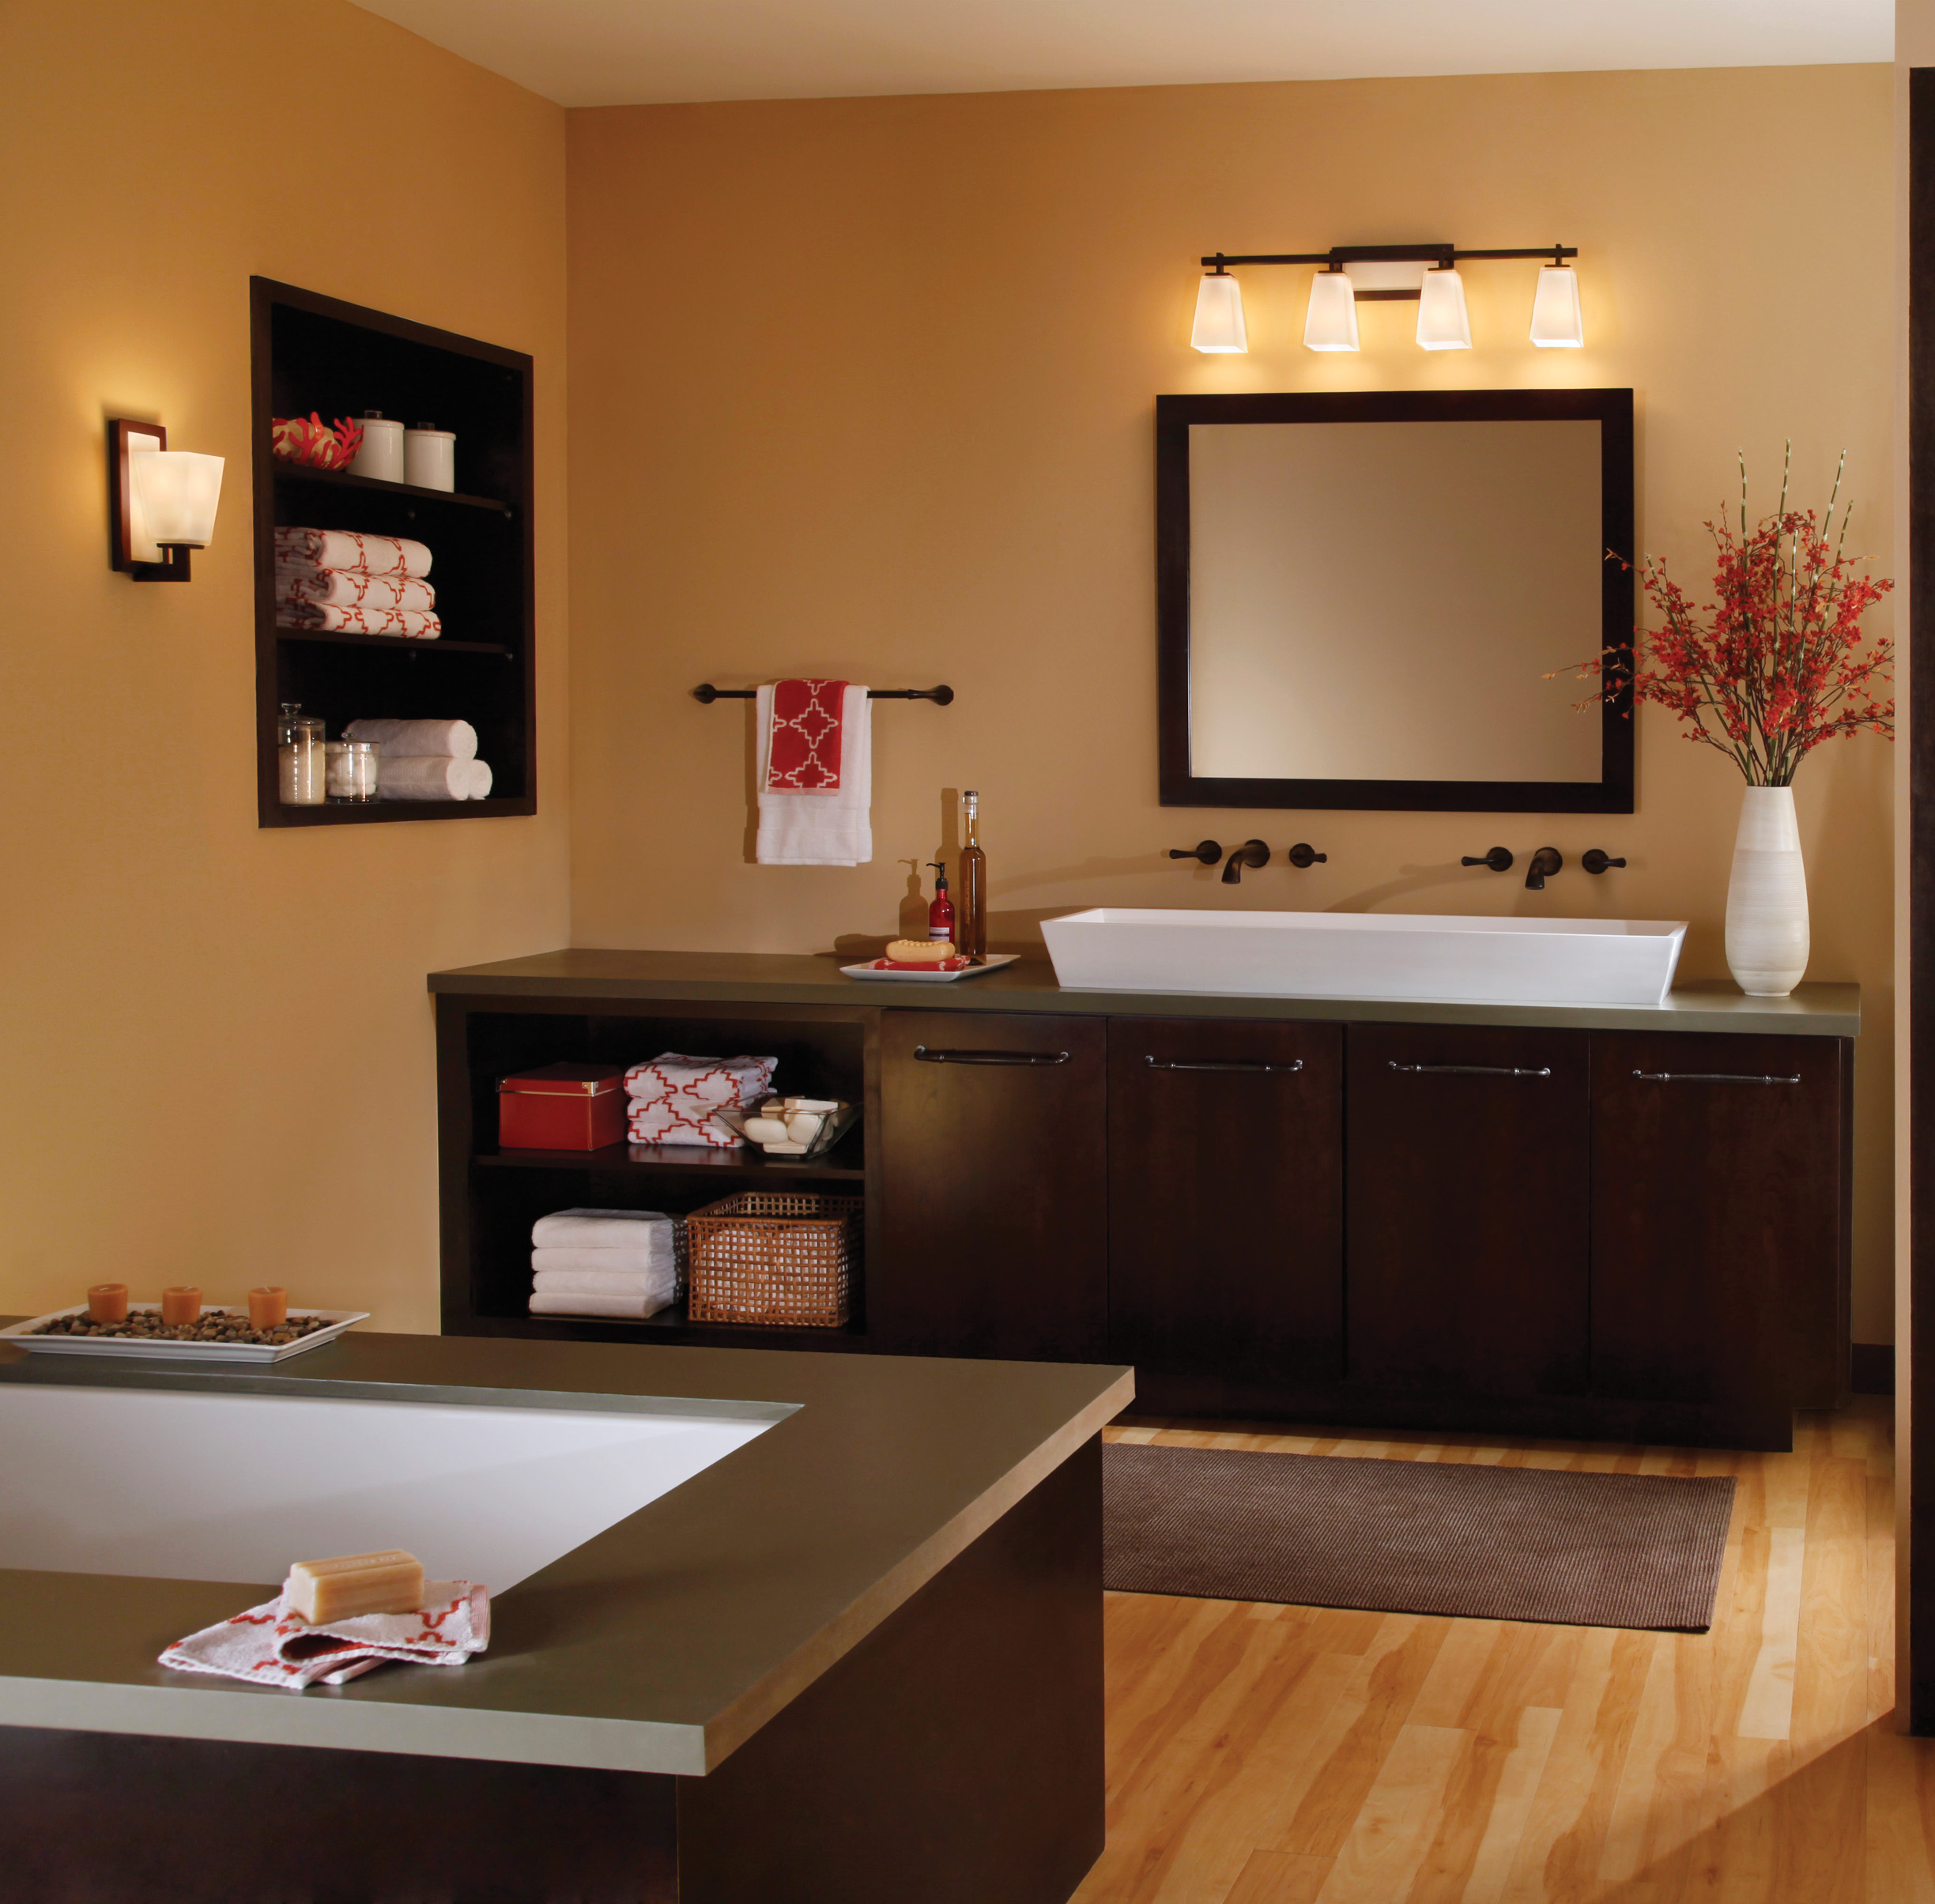 Best Bathroom Lighting Lighting Your Dream Bathroom Welcome To Lighting Inc Online